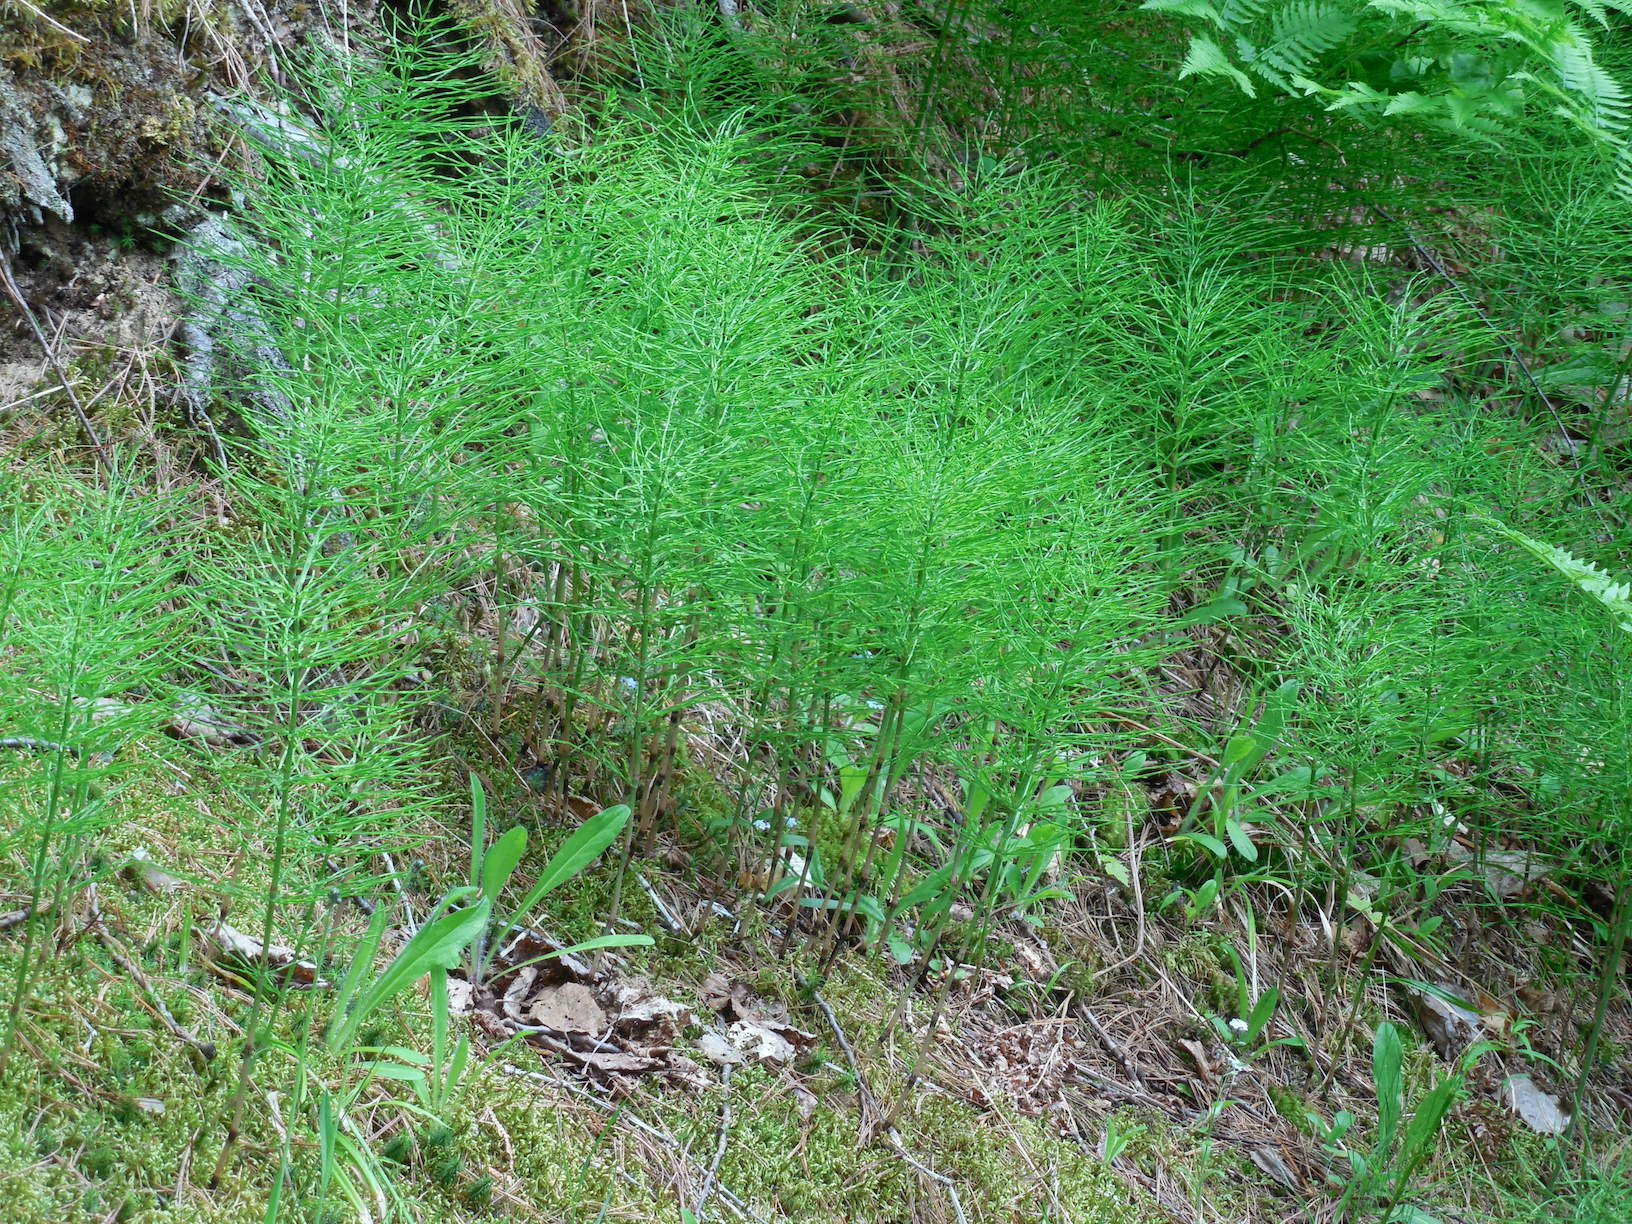 The Scientific Name is Equisetum arvense. You will likely hear them called Field Horsetail. This picture shows the Sterile shoots. of Equisetum arvense